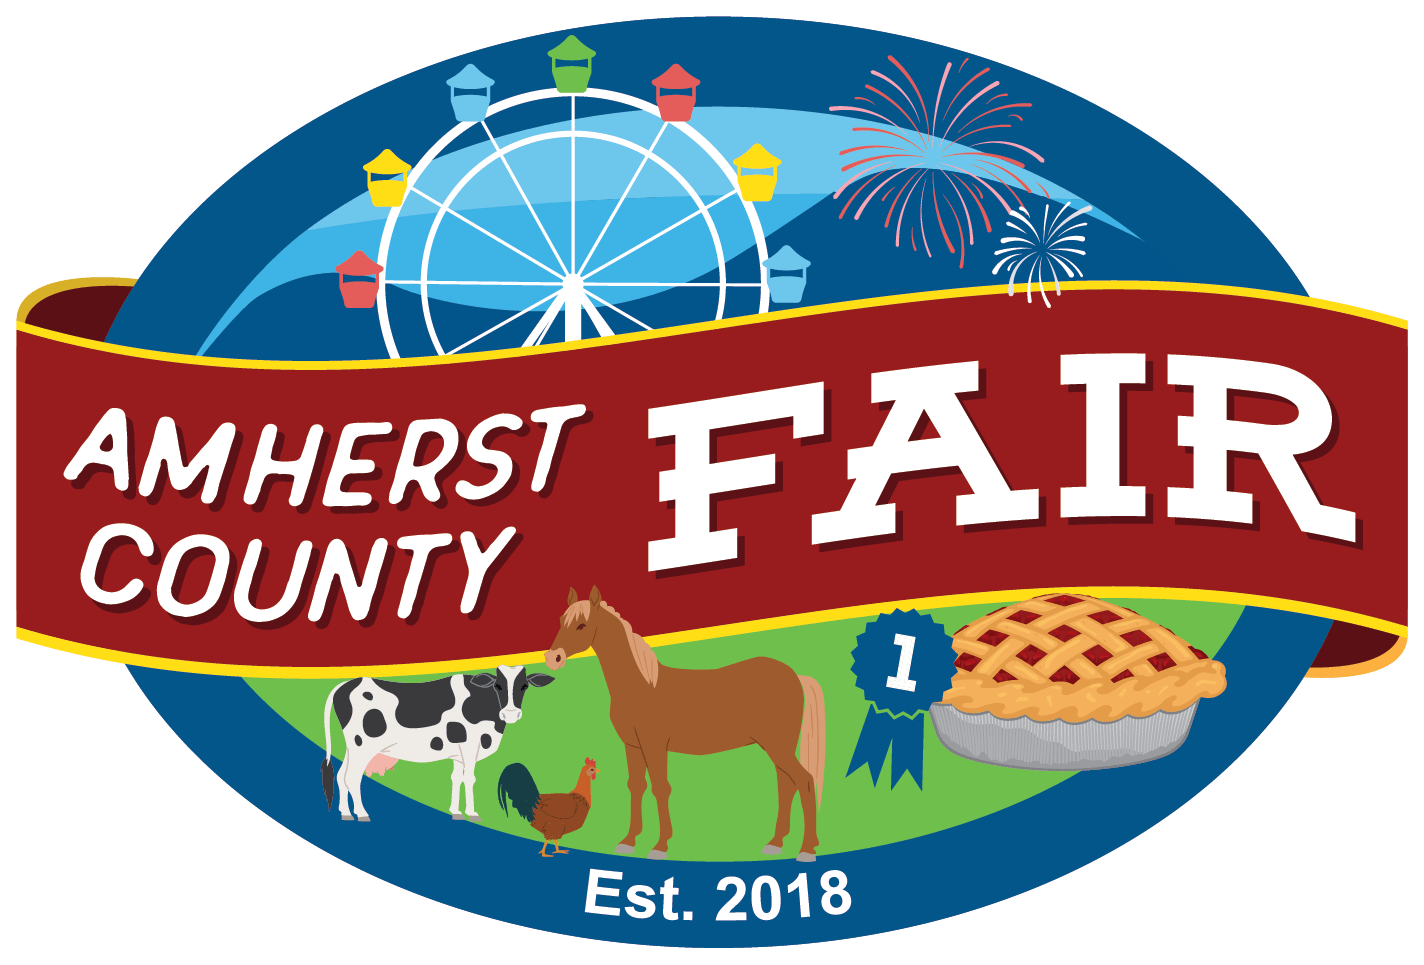 AMHERST COUNTY FAIR